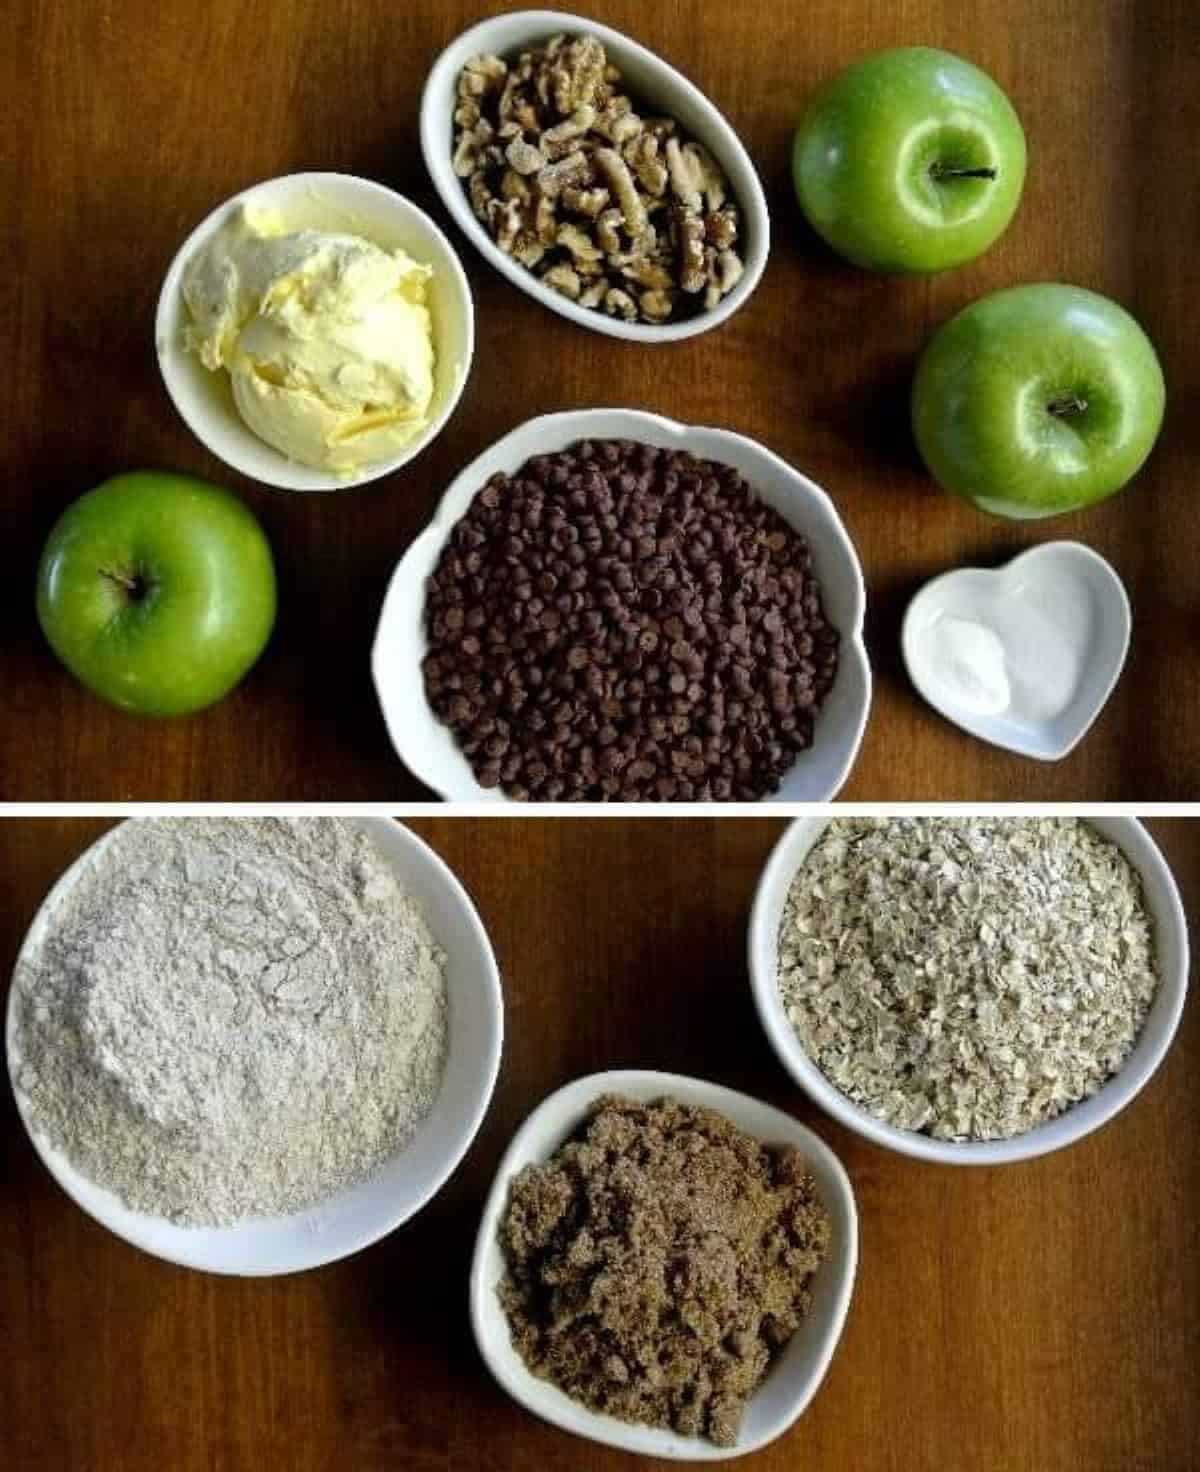 Overhead photo of all of the ingredients in their own small bowls.